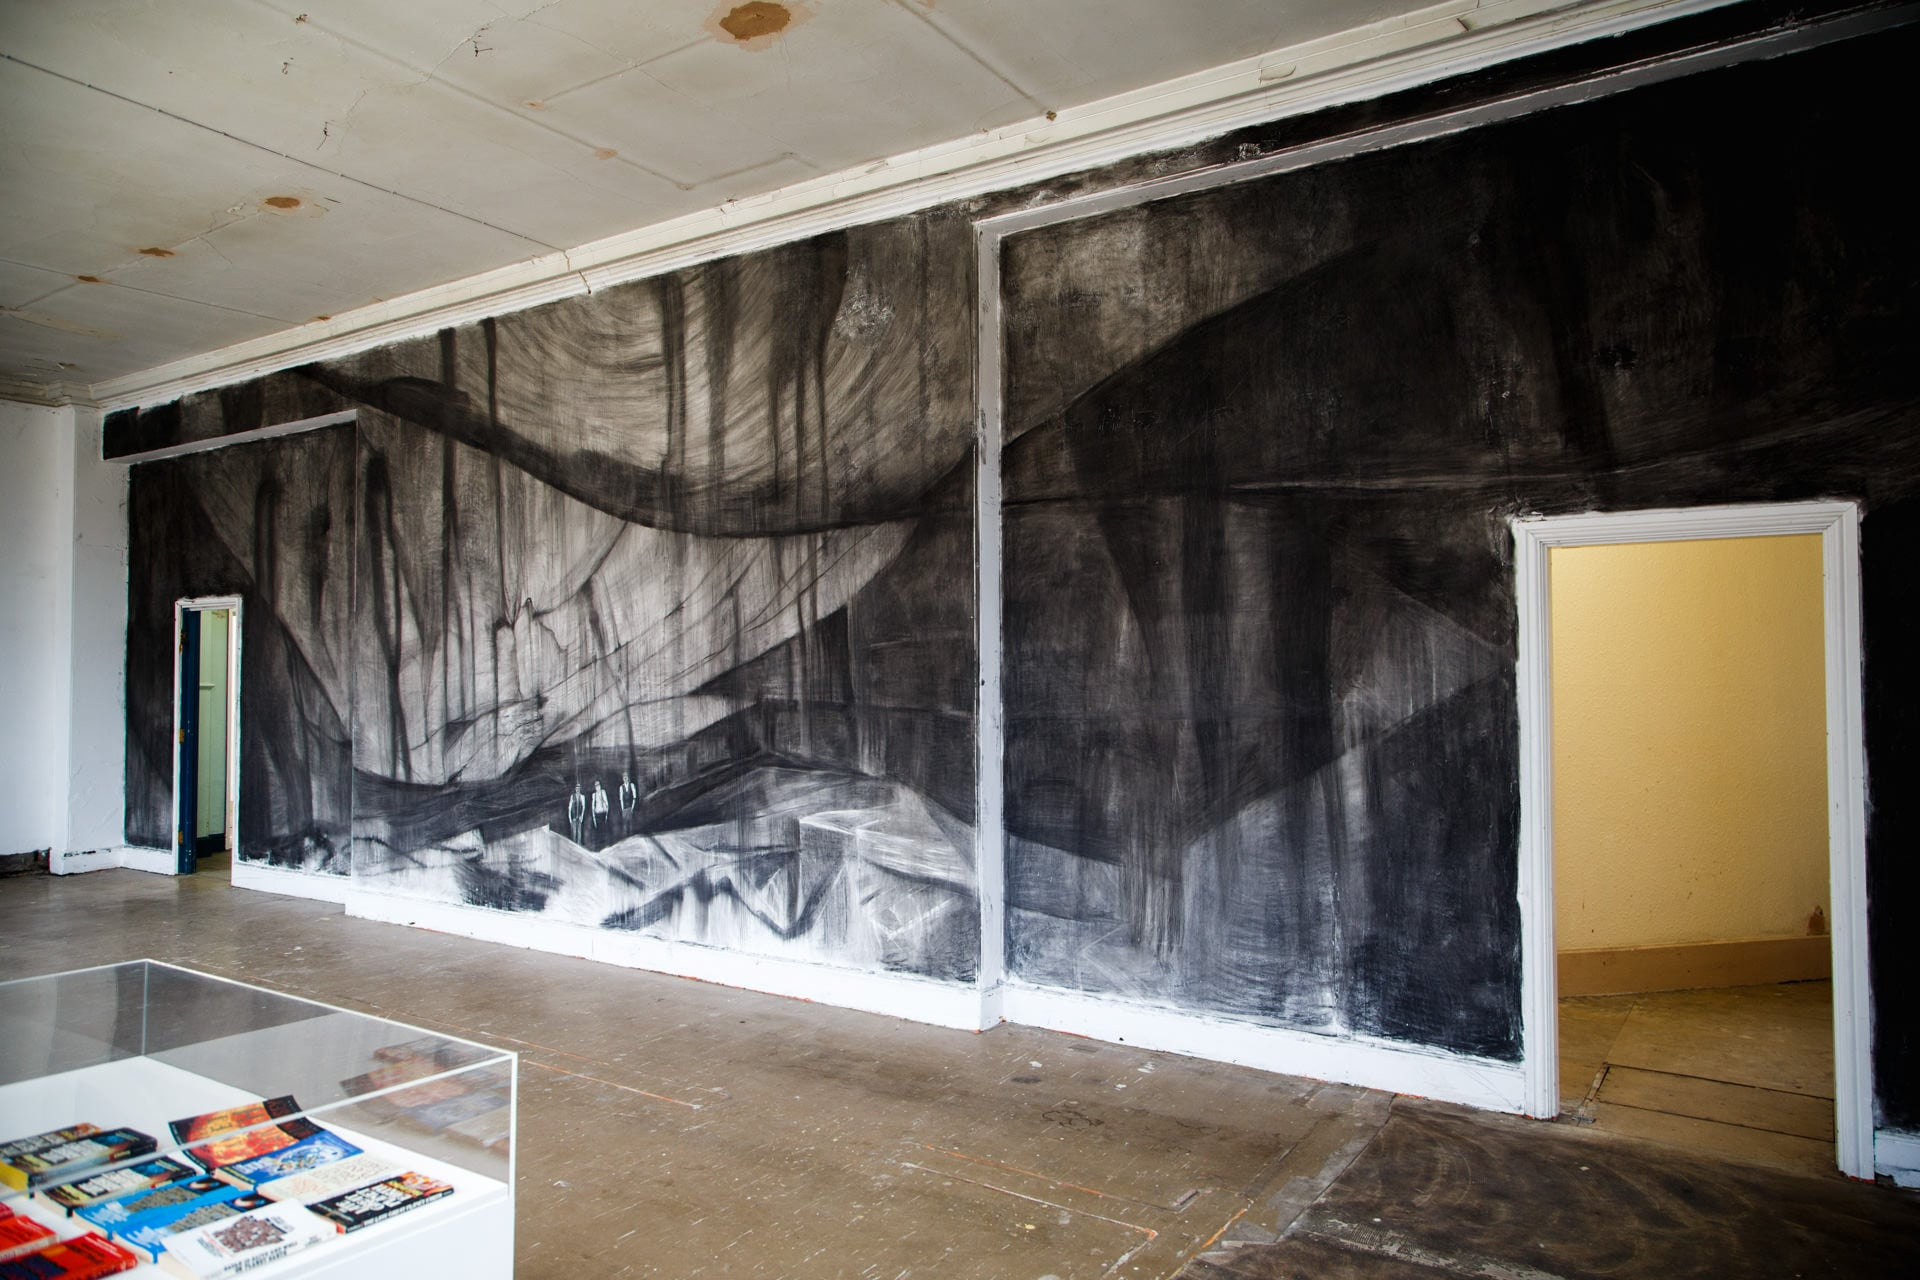 Marc Bauer's 'Quarry' drawing on the wall.